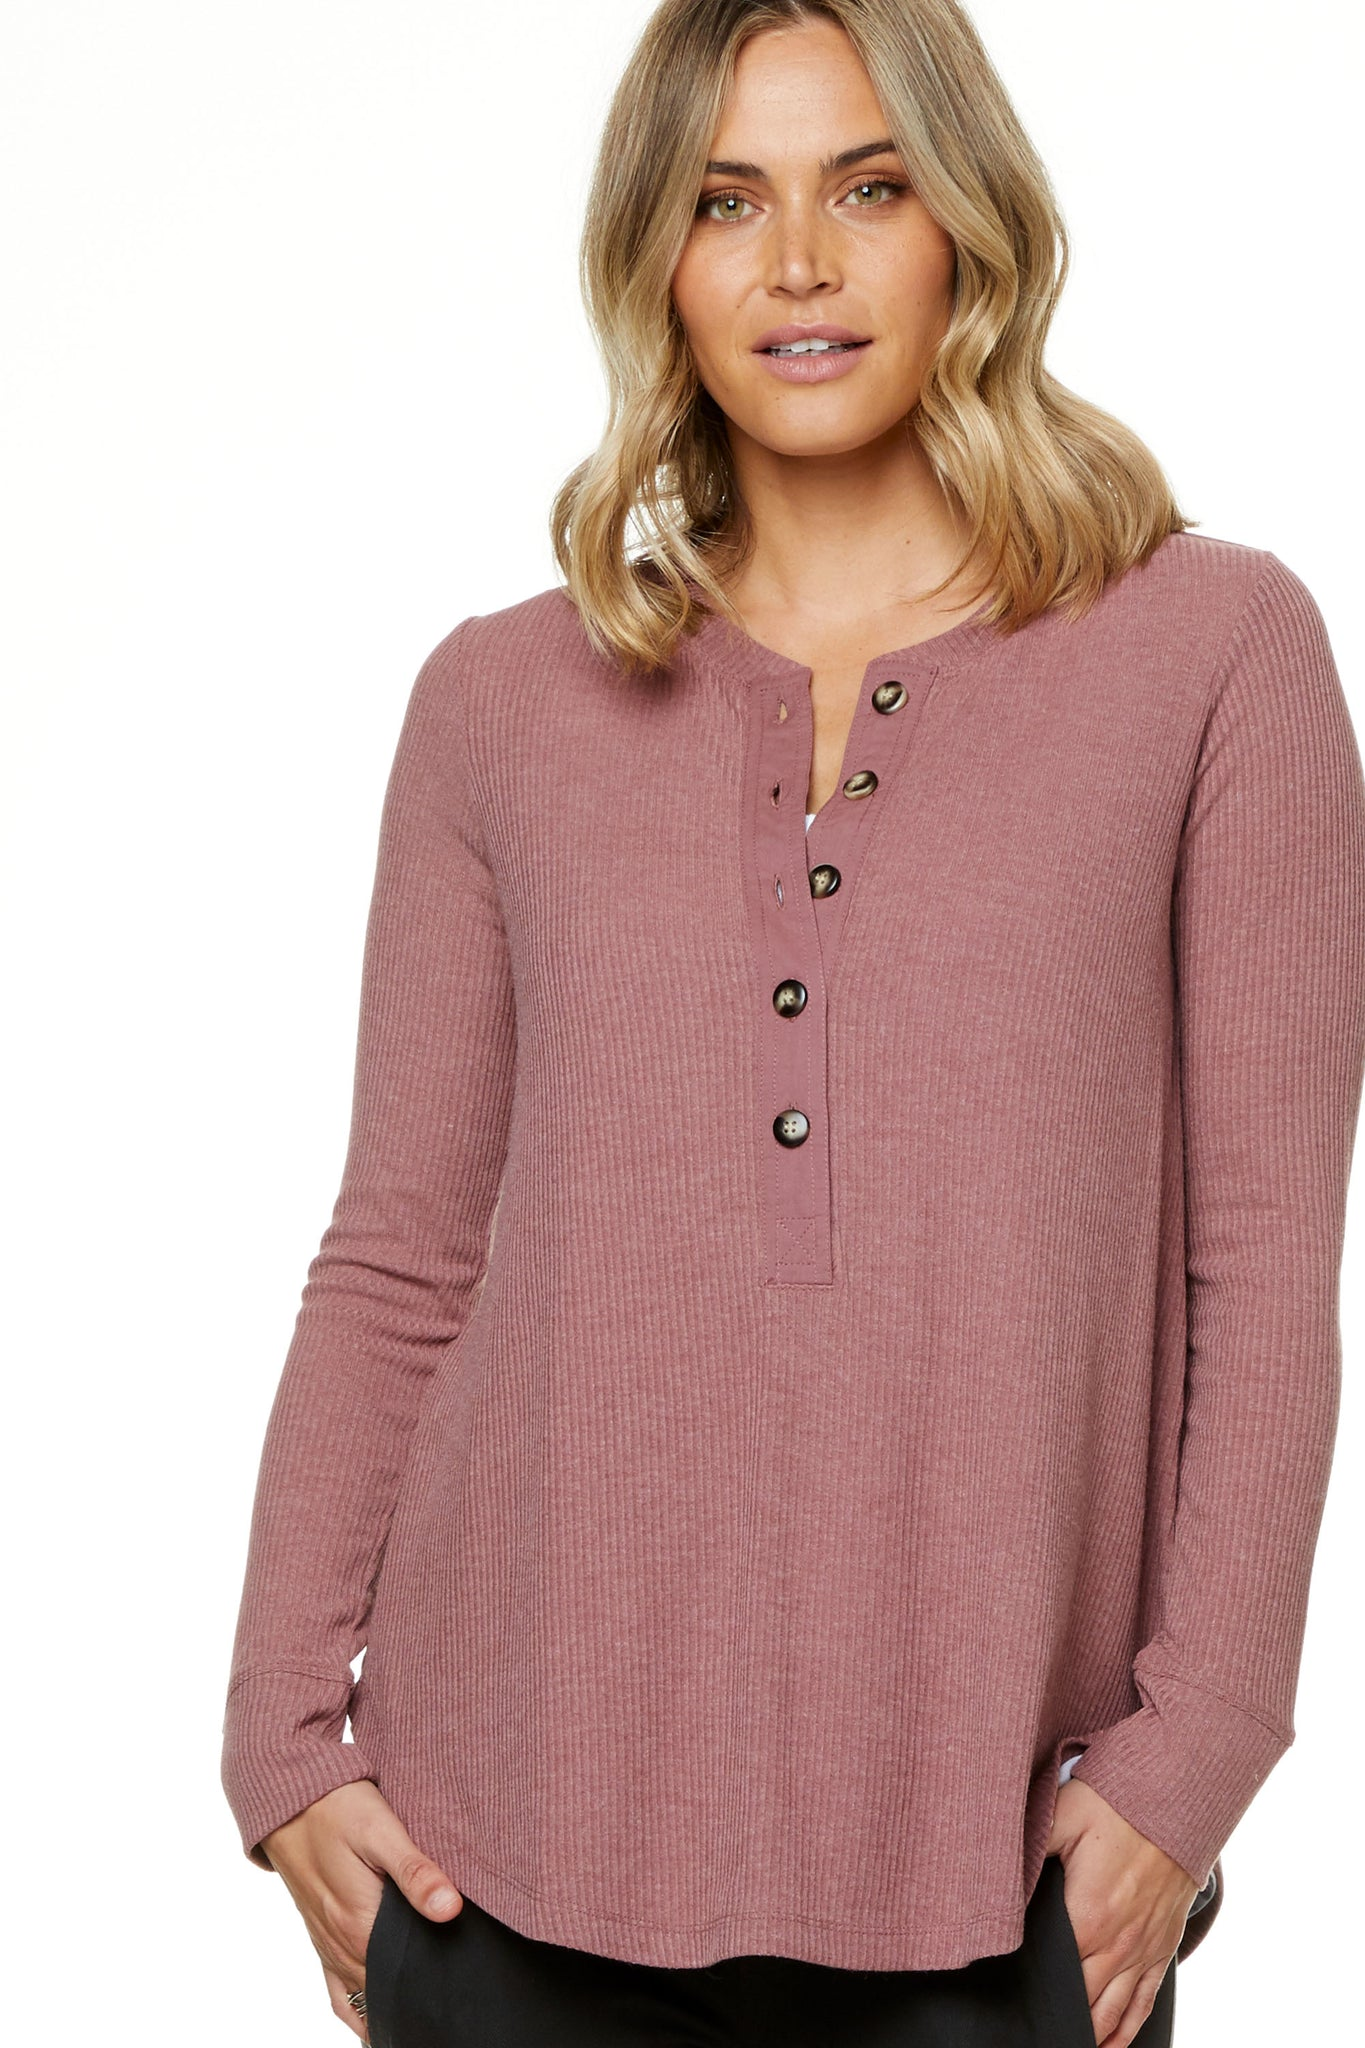 Long Sleeve Nursing Top 6